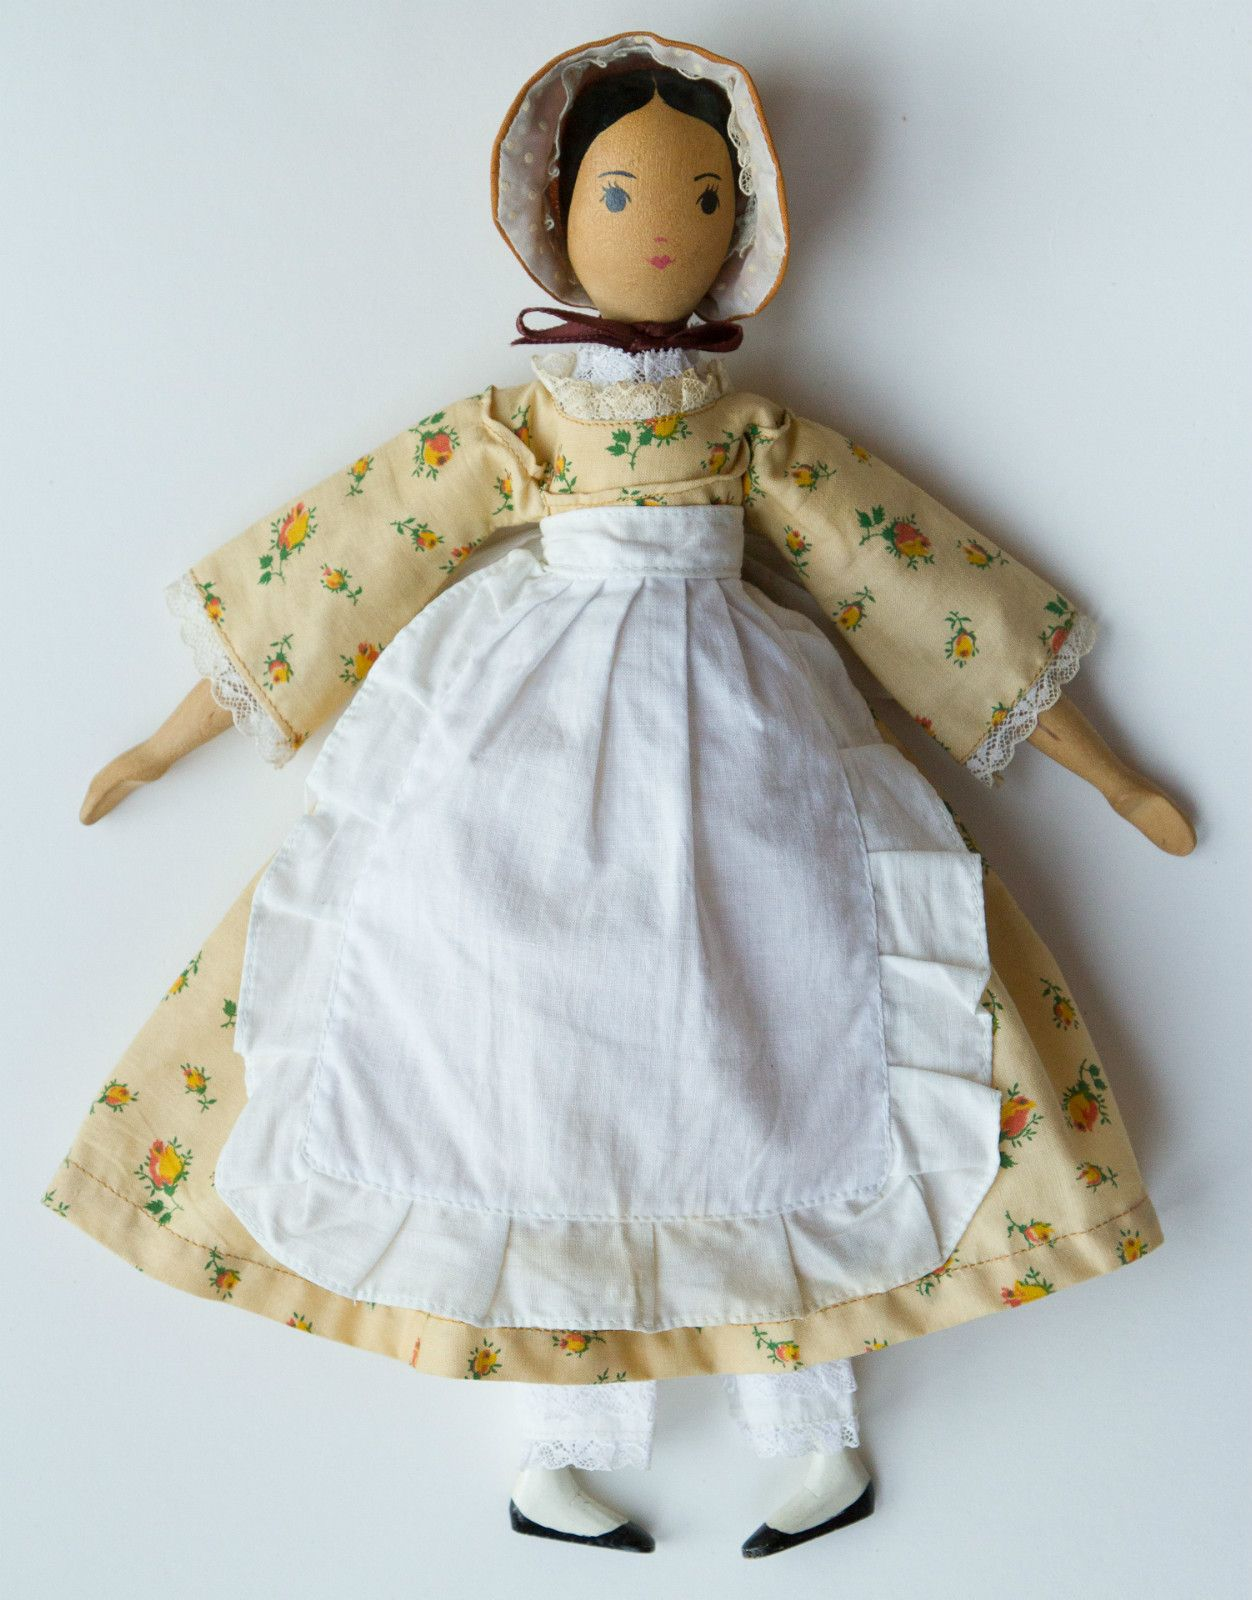 Sweet Vintage SIGNED Polly Shorrock Handmade Wooden